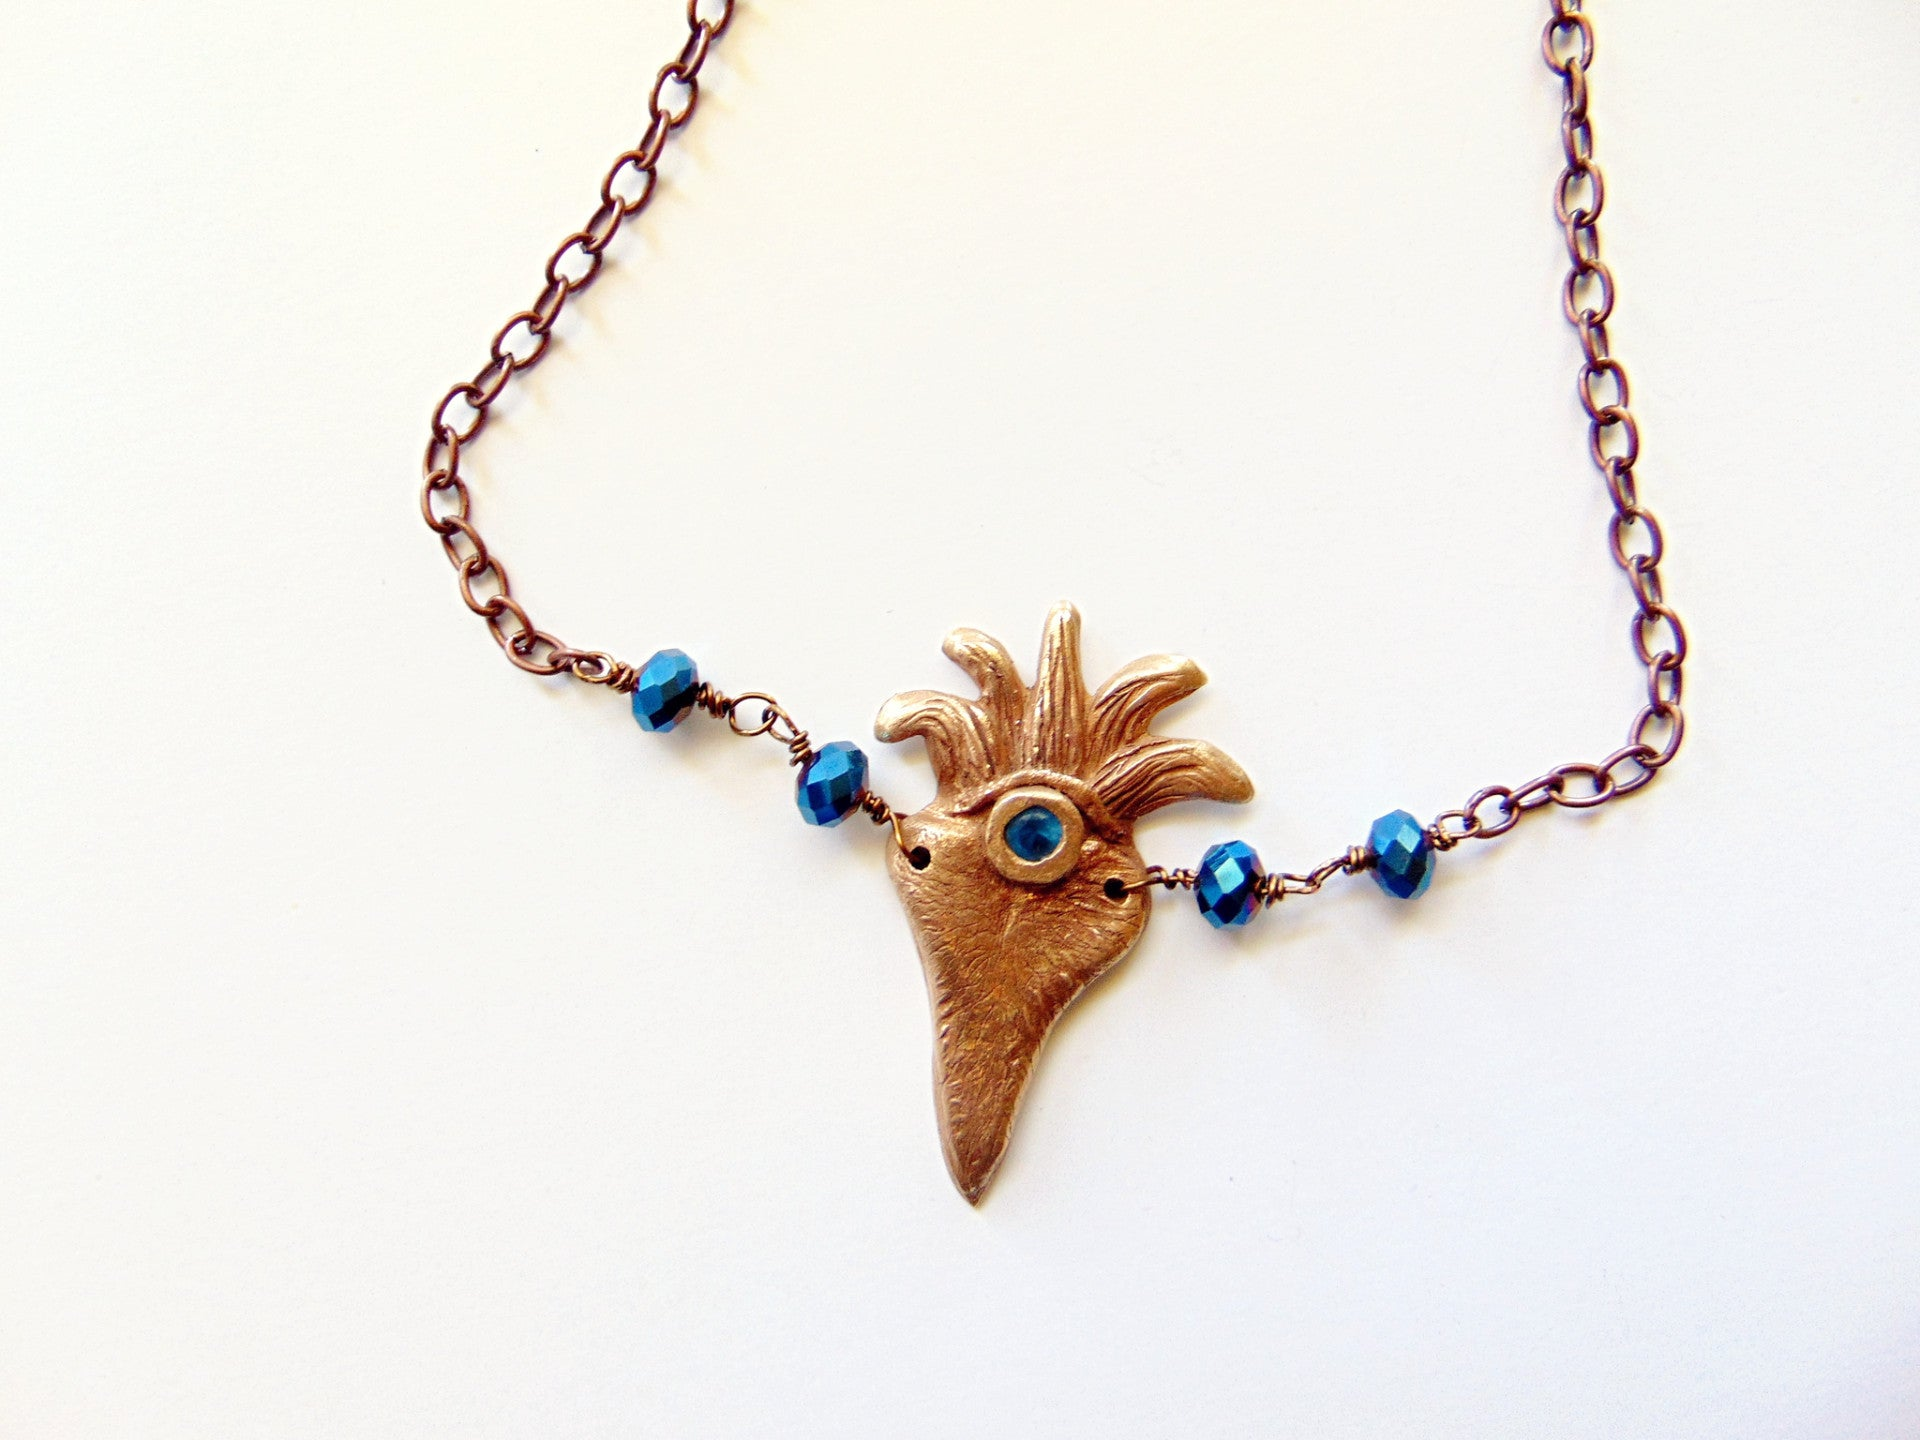 Flaming Heart Bronze Pendant Necklace With Blue Spinel Gemstone - CosmicDeva